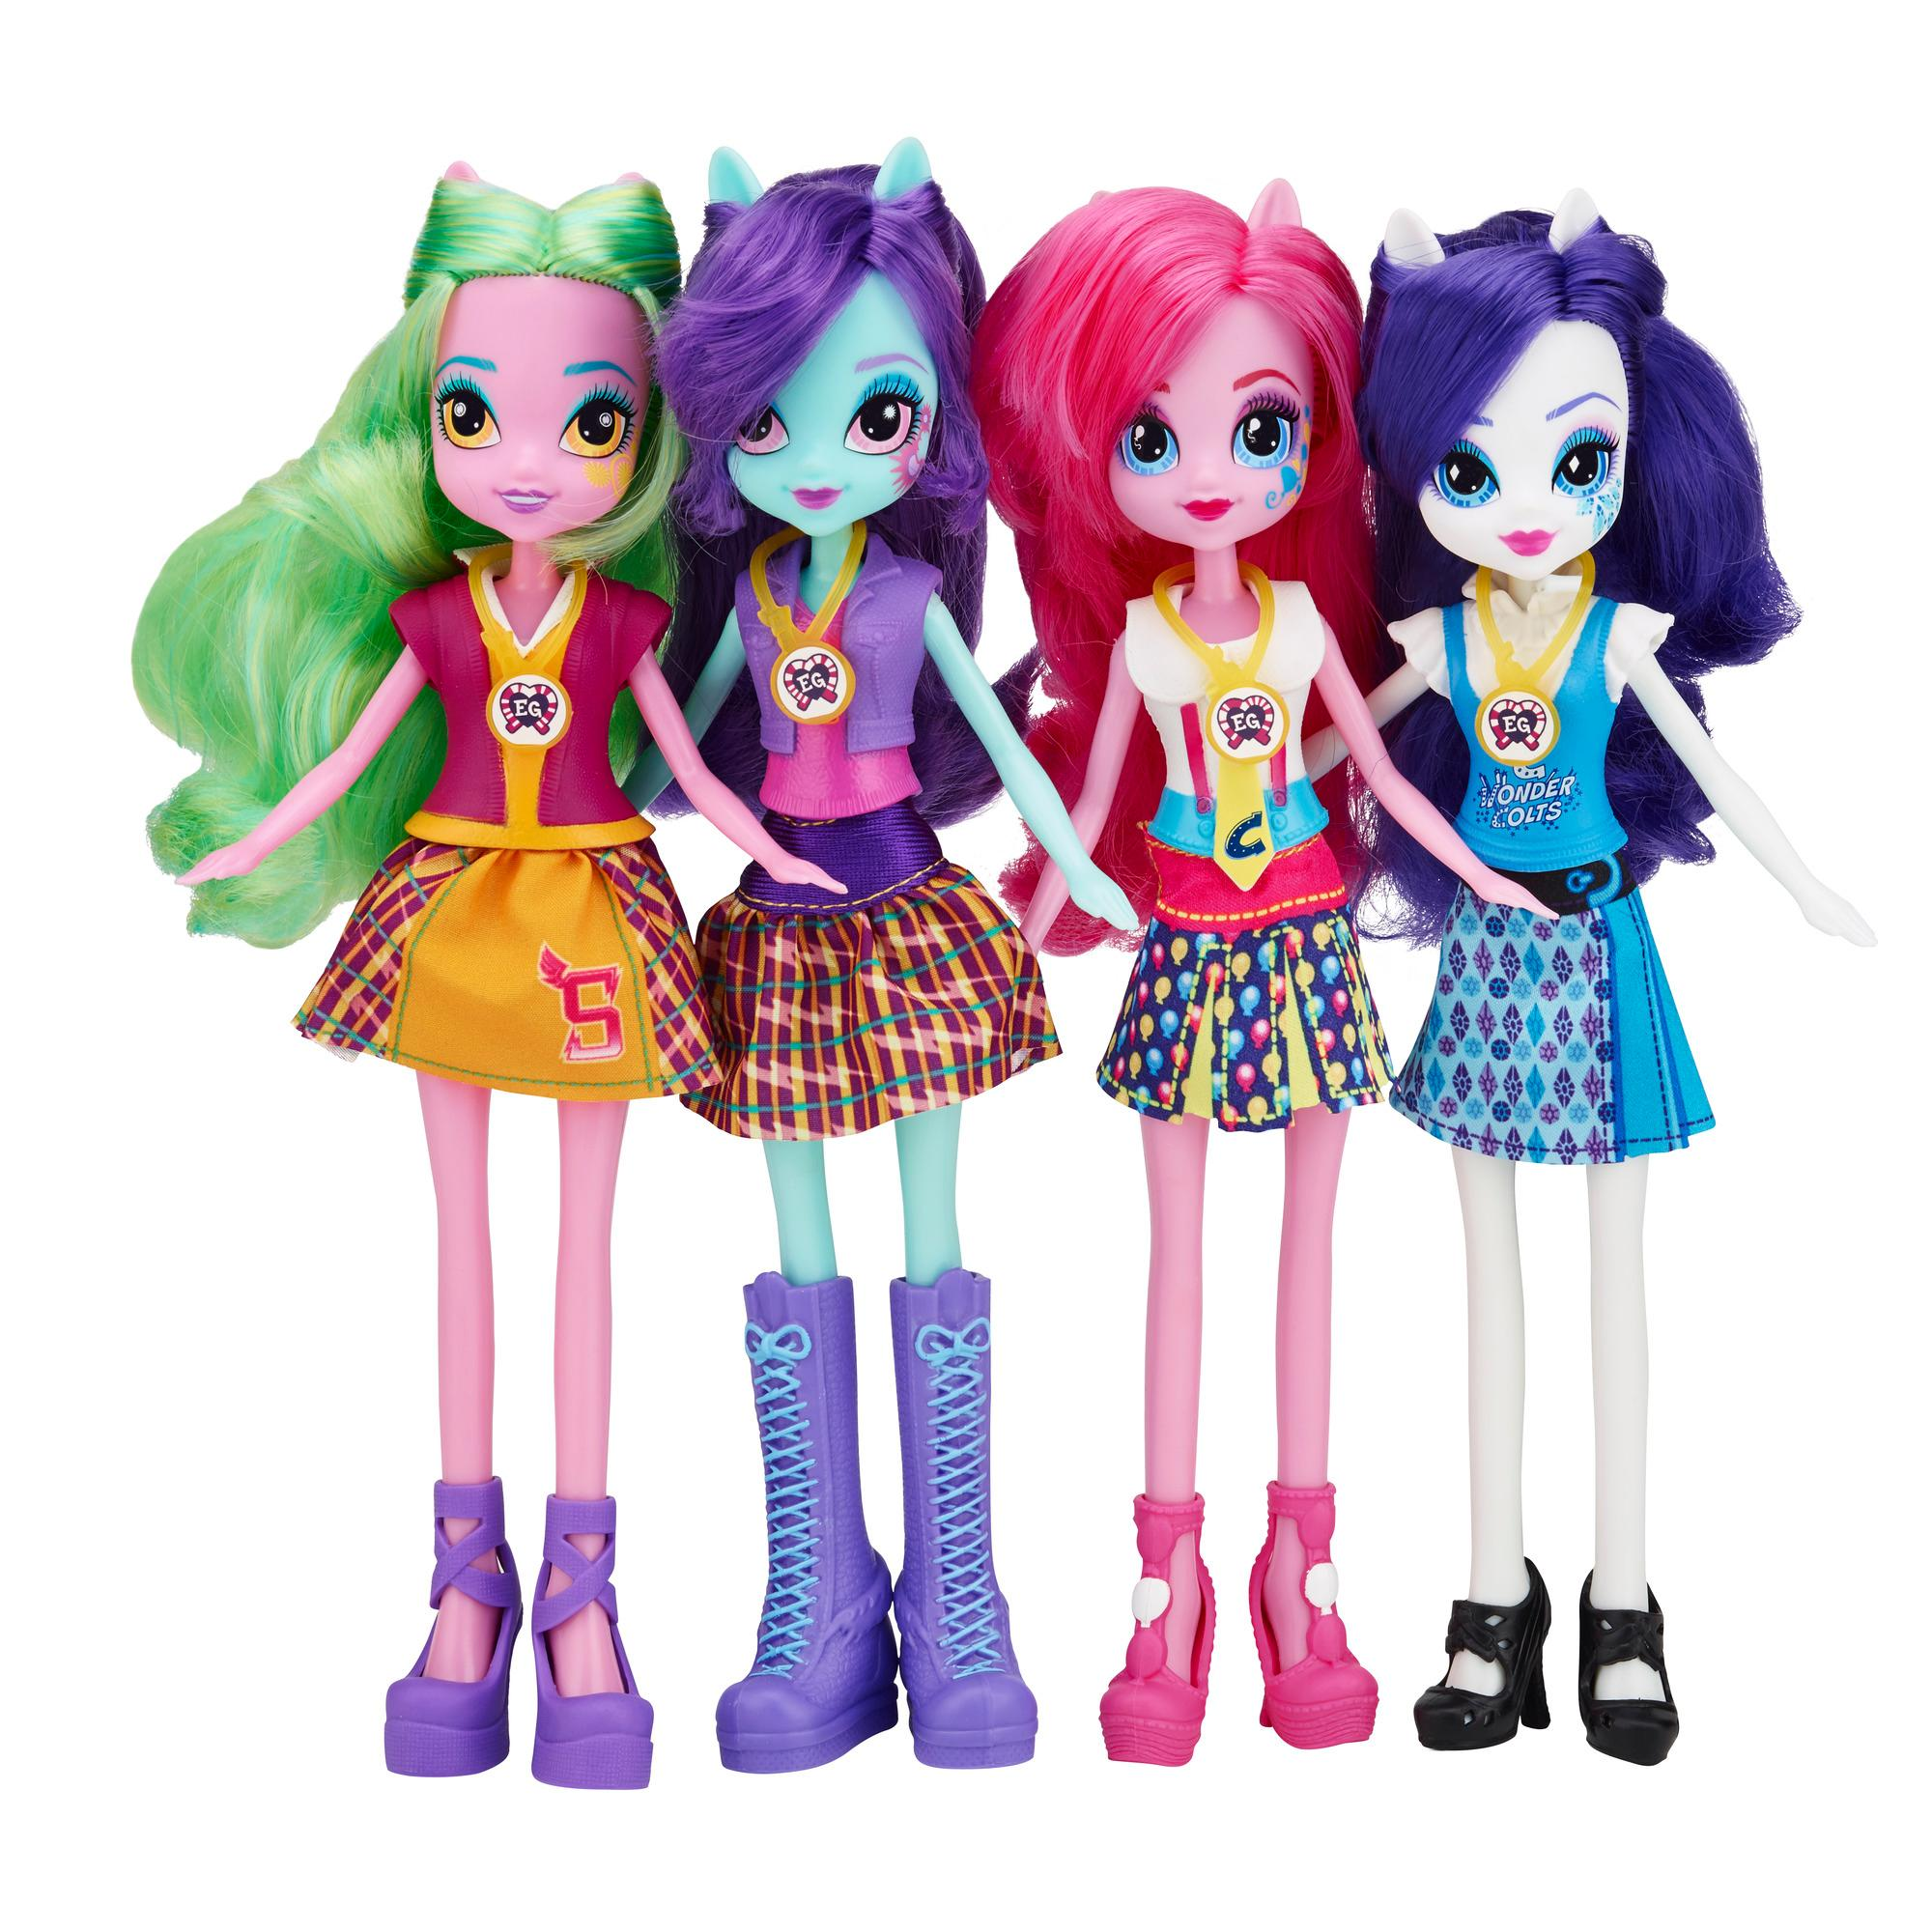 My Little Pony Equestria Girls Sour Sweets Dolls Amazon Canada